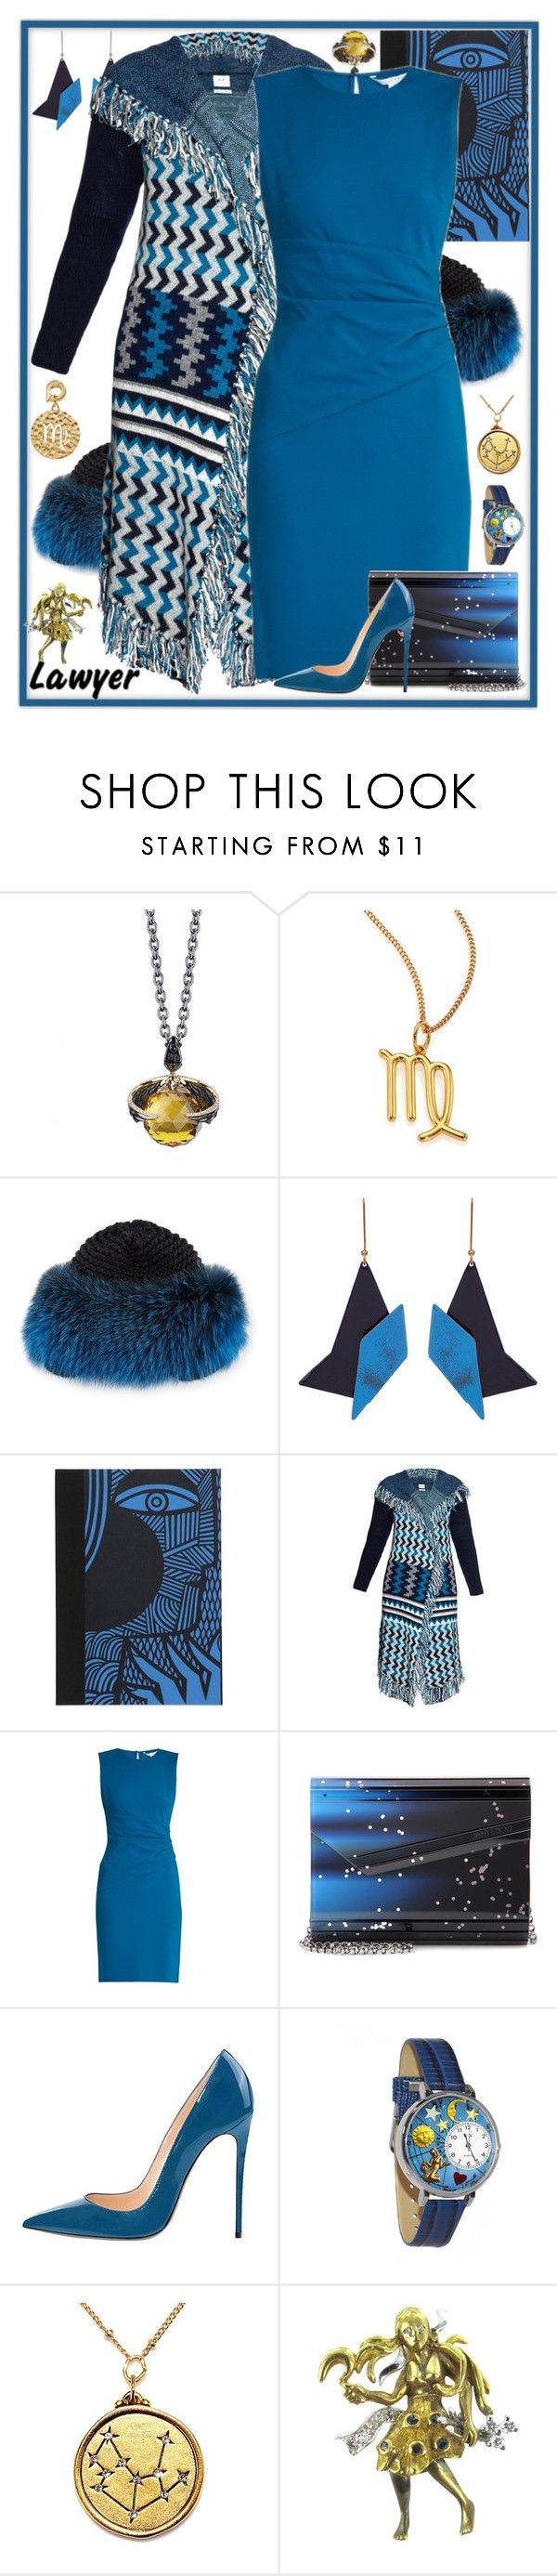 """""""What's Your Sign: Cosmic Jewelry"""" by yours-styling-best-friend ❤ liked on Polyvore featuring Stephen Webster, Chloé, Inverni, STELLA McCARTNEY, Petra Börner, Banjo & Matilda, Diane Von Furstenberg, Jimmy Choo, Whimsical Watches and Vintage"""